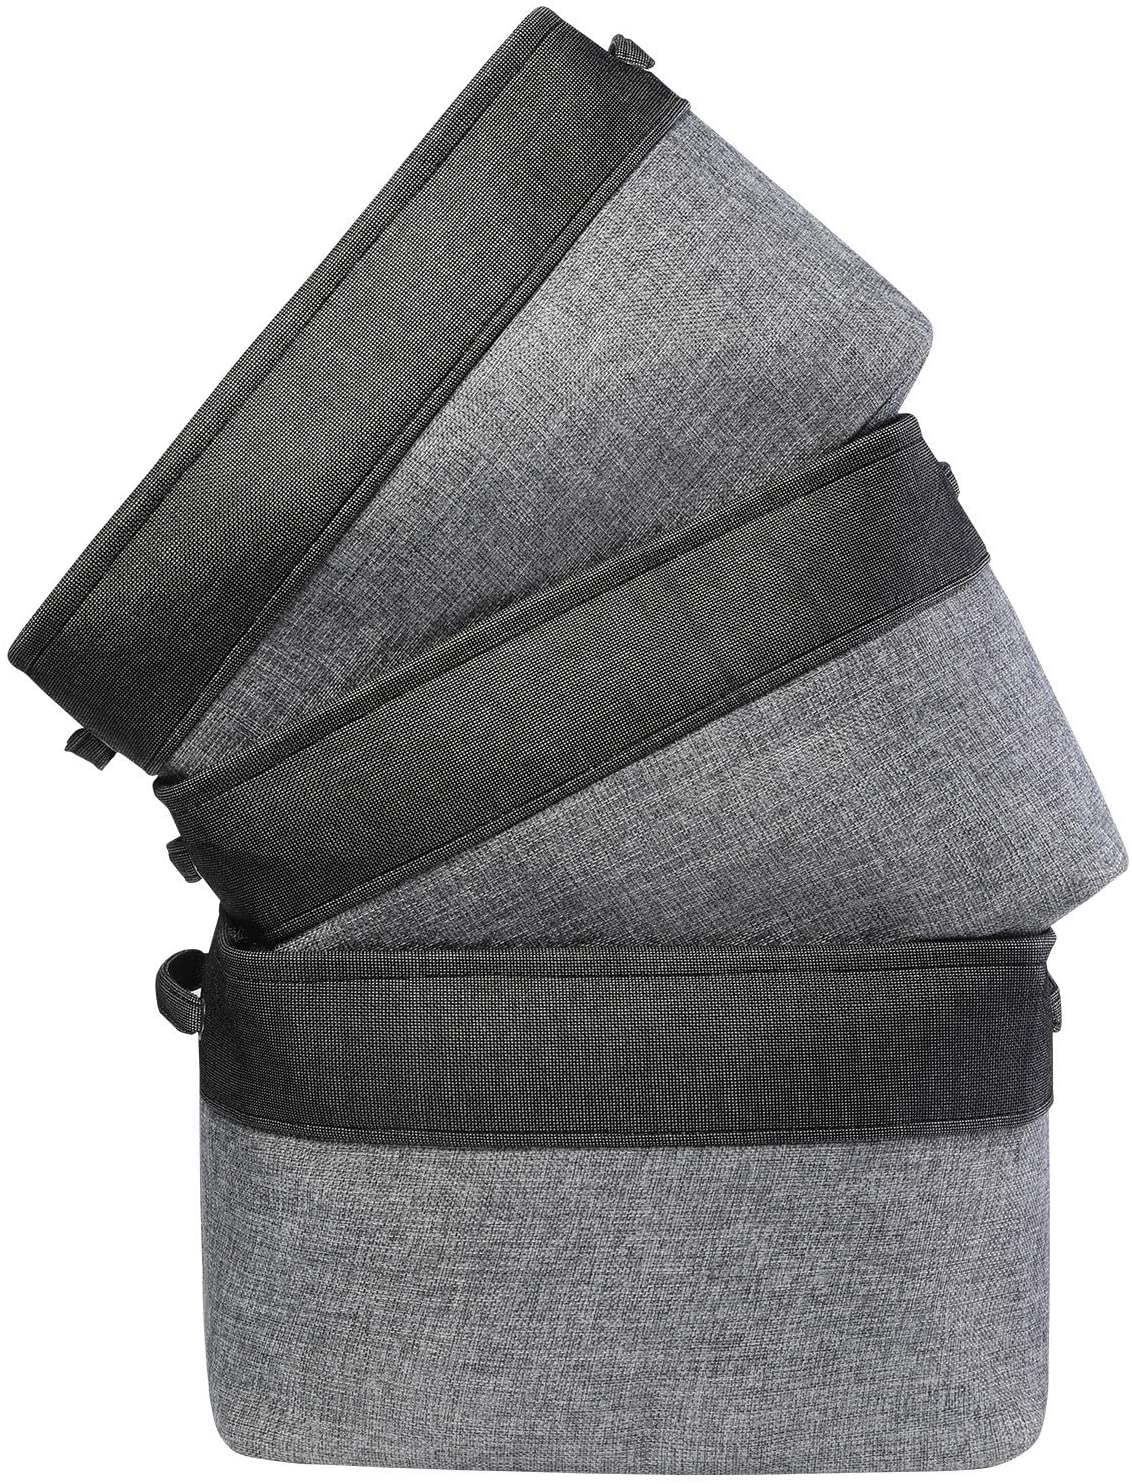 3 Pack Large Foldable Storage Bins Shelf Basket 15 x 11 x 9.8 in Rectangular Linens Fabric Collapsible Organizer Bin Laundry Hampers Baskets for Baby, Nursery, Toys, Home Closet, Laundry (Black)